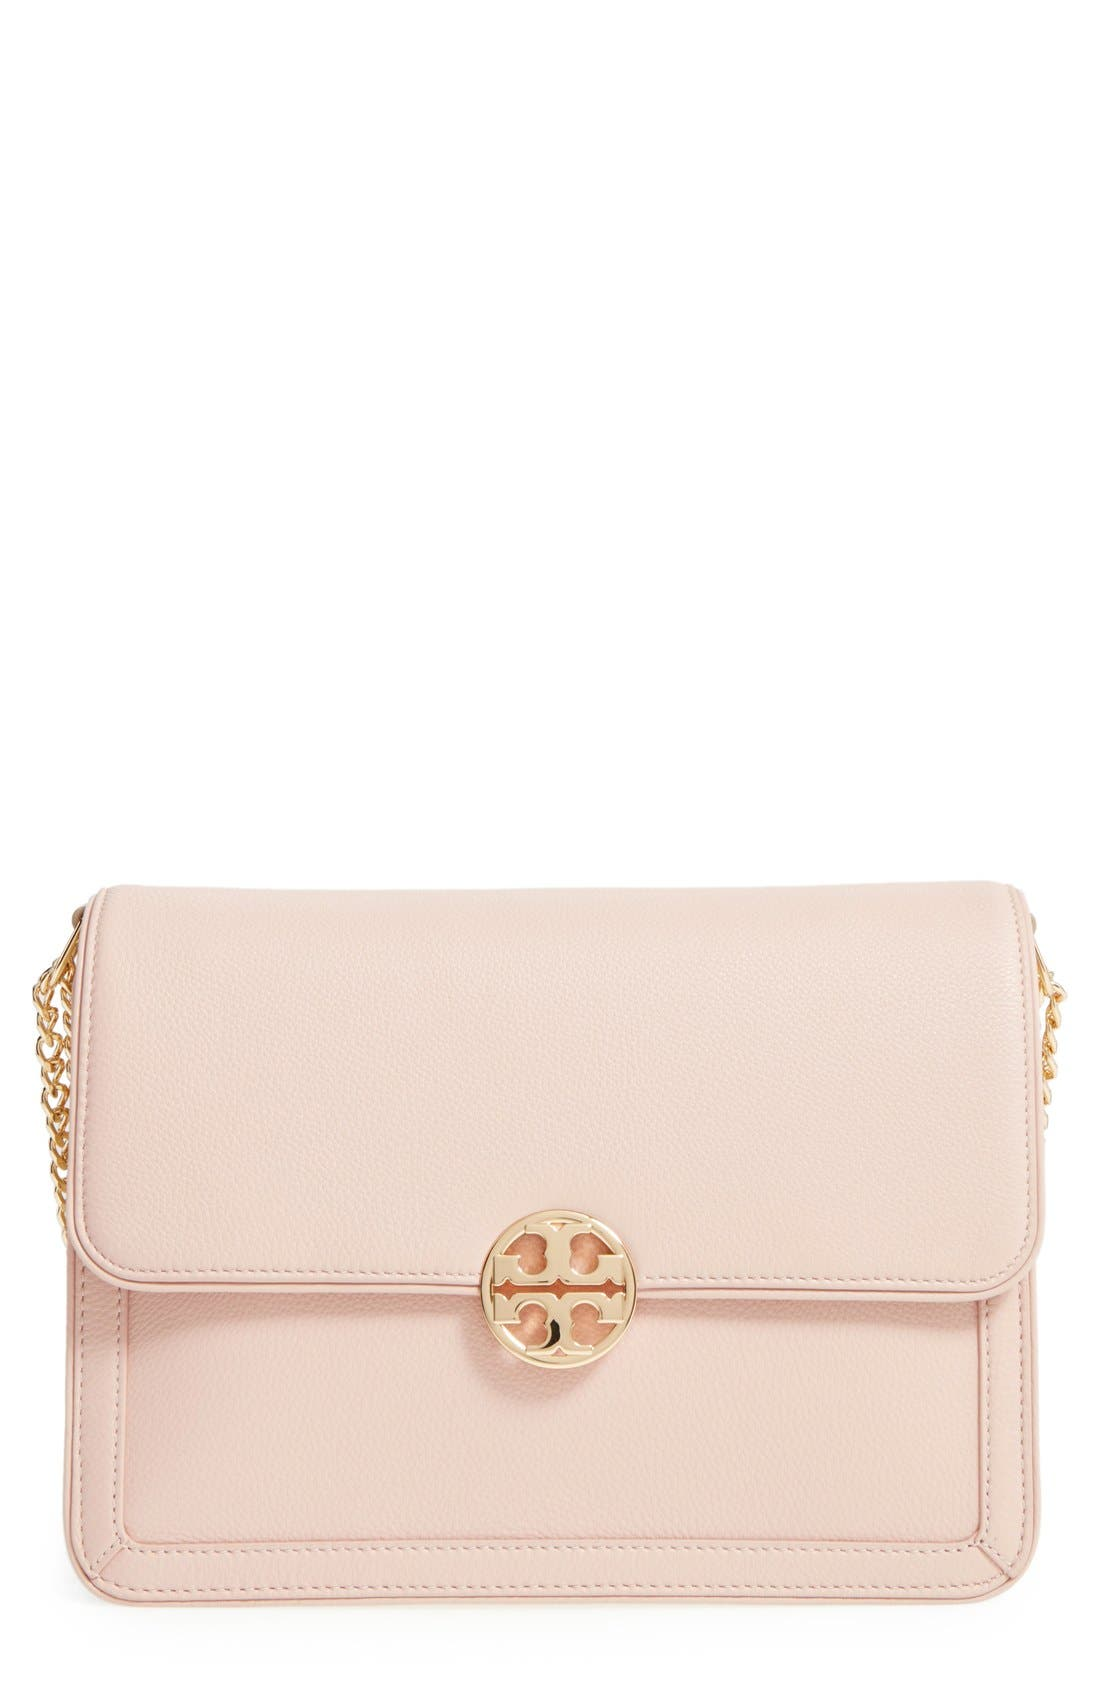 Main Image - Tory Burch Large Duet Leather Shoulder Bag